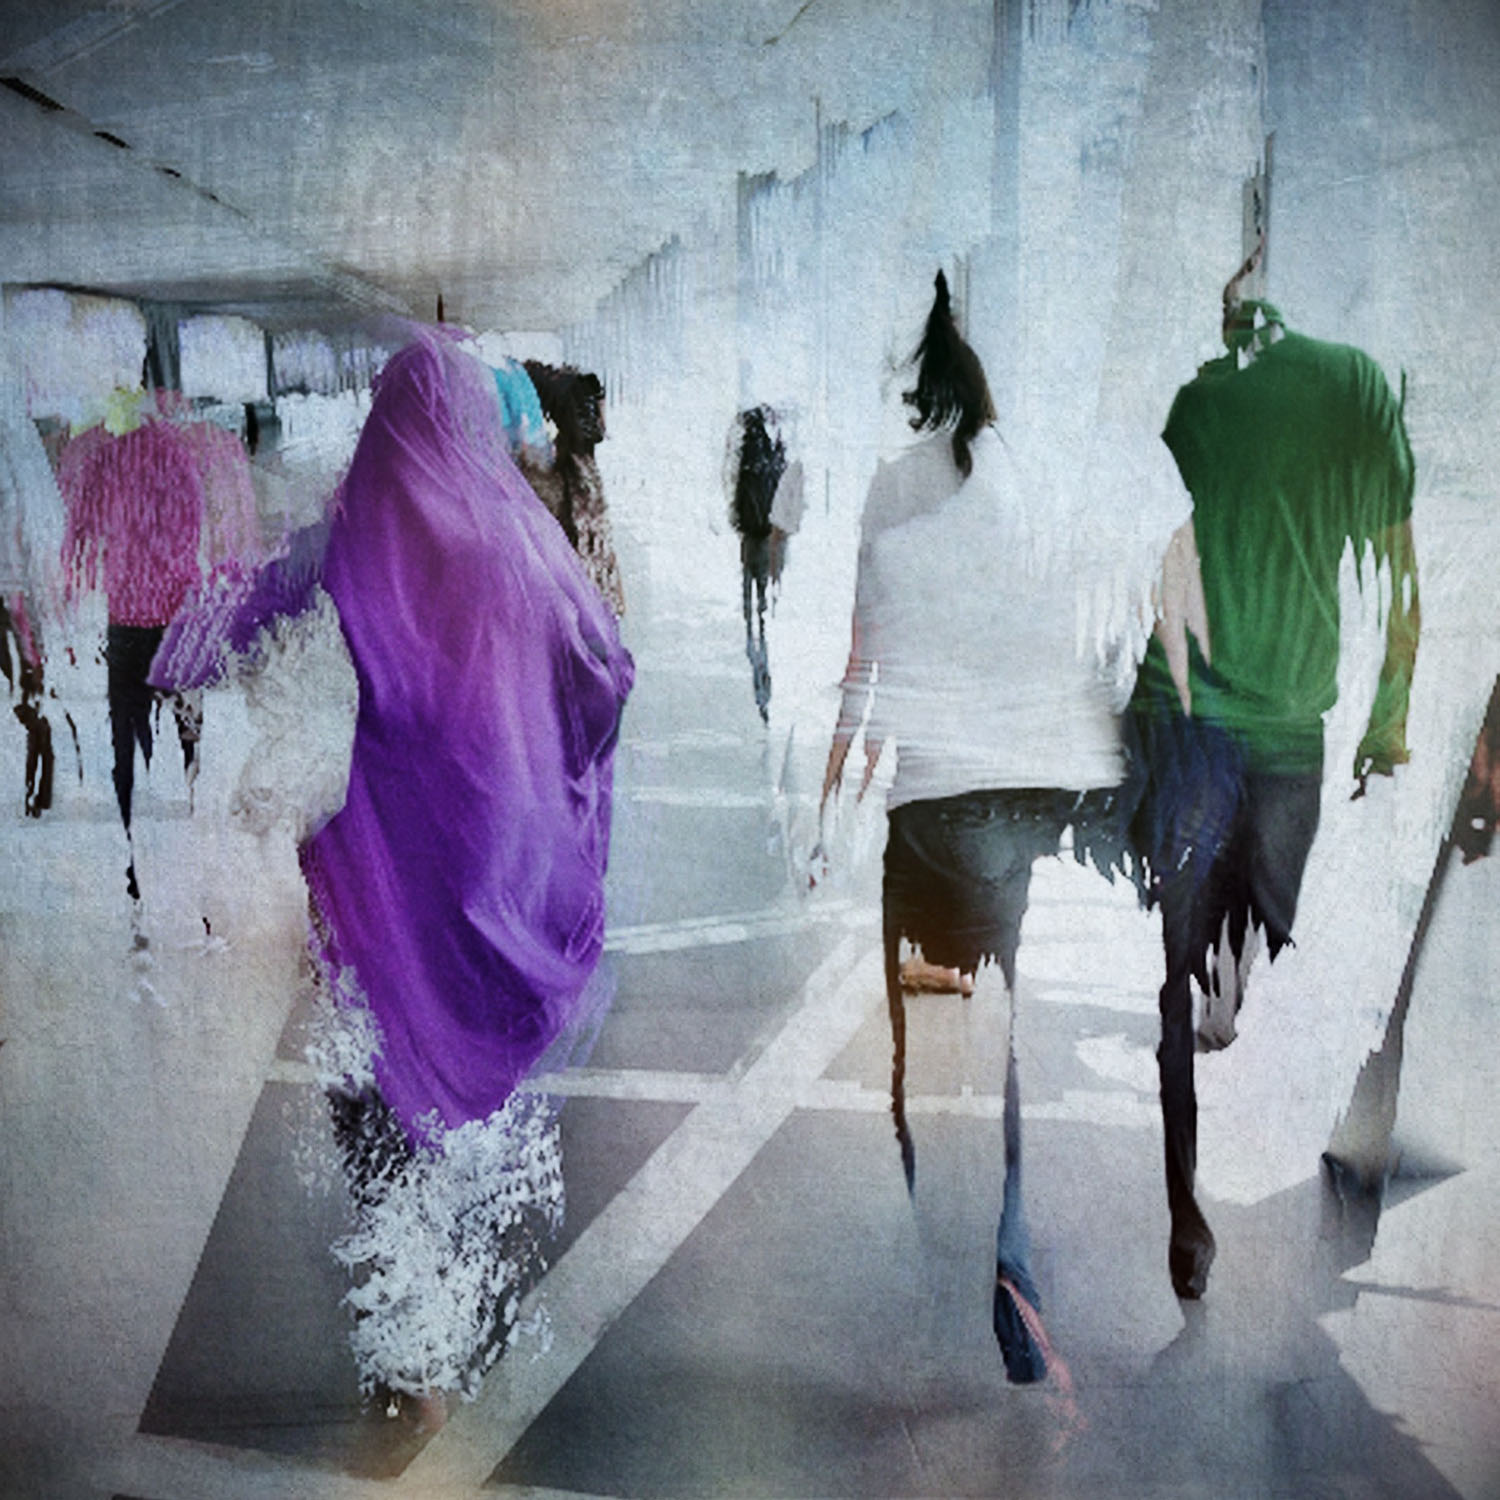 Movement in the Mall by Linda Hollier